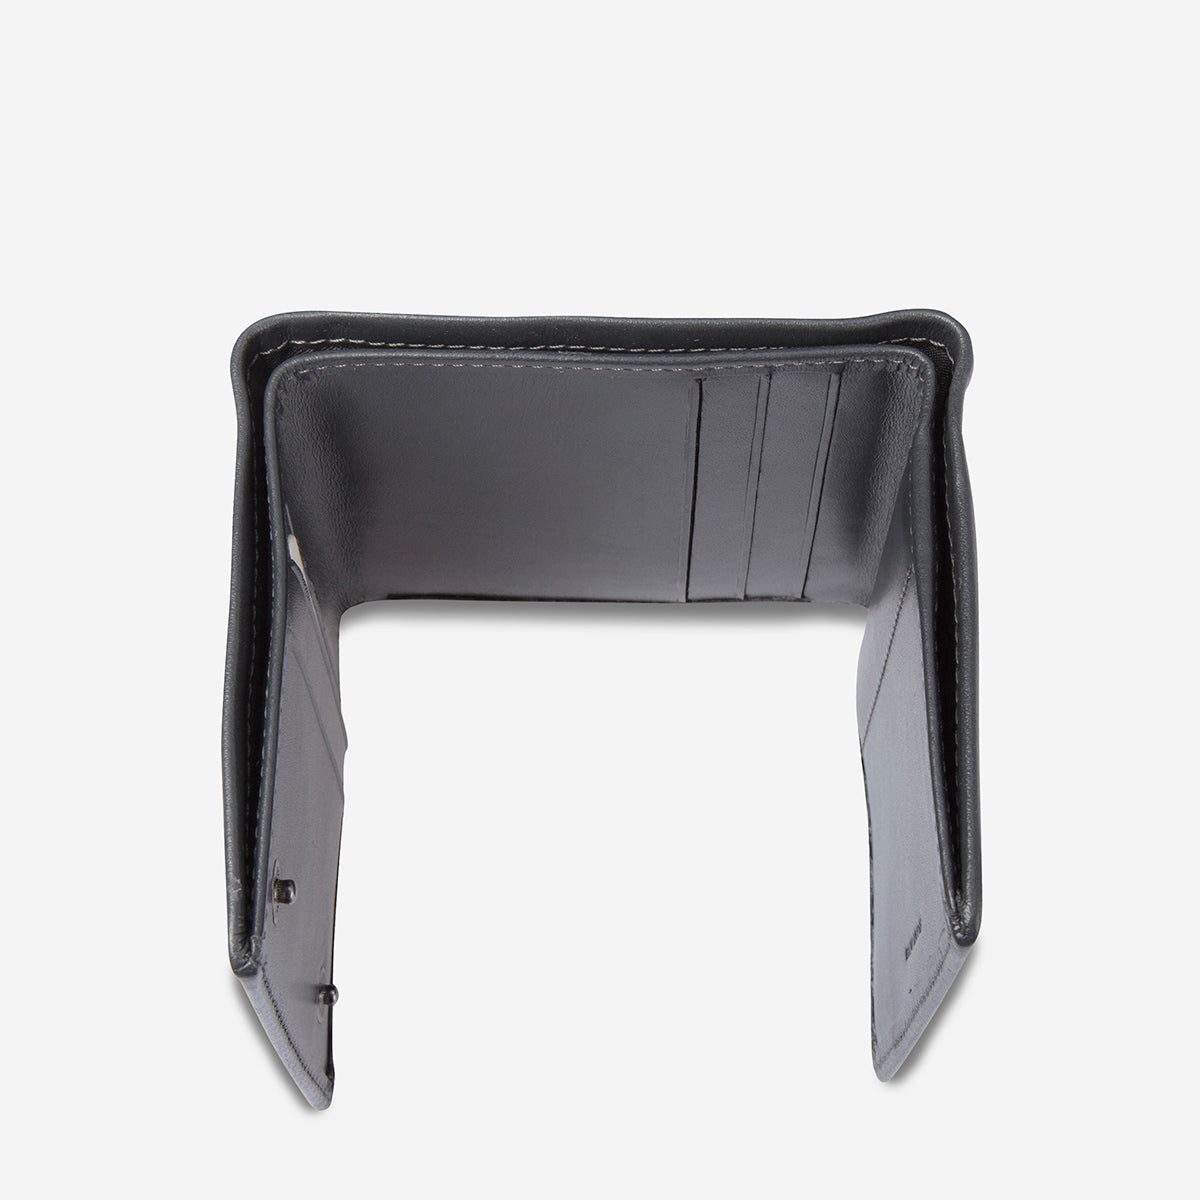 Status Anxiety Vincent Leather Wallet - Charcoal